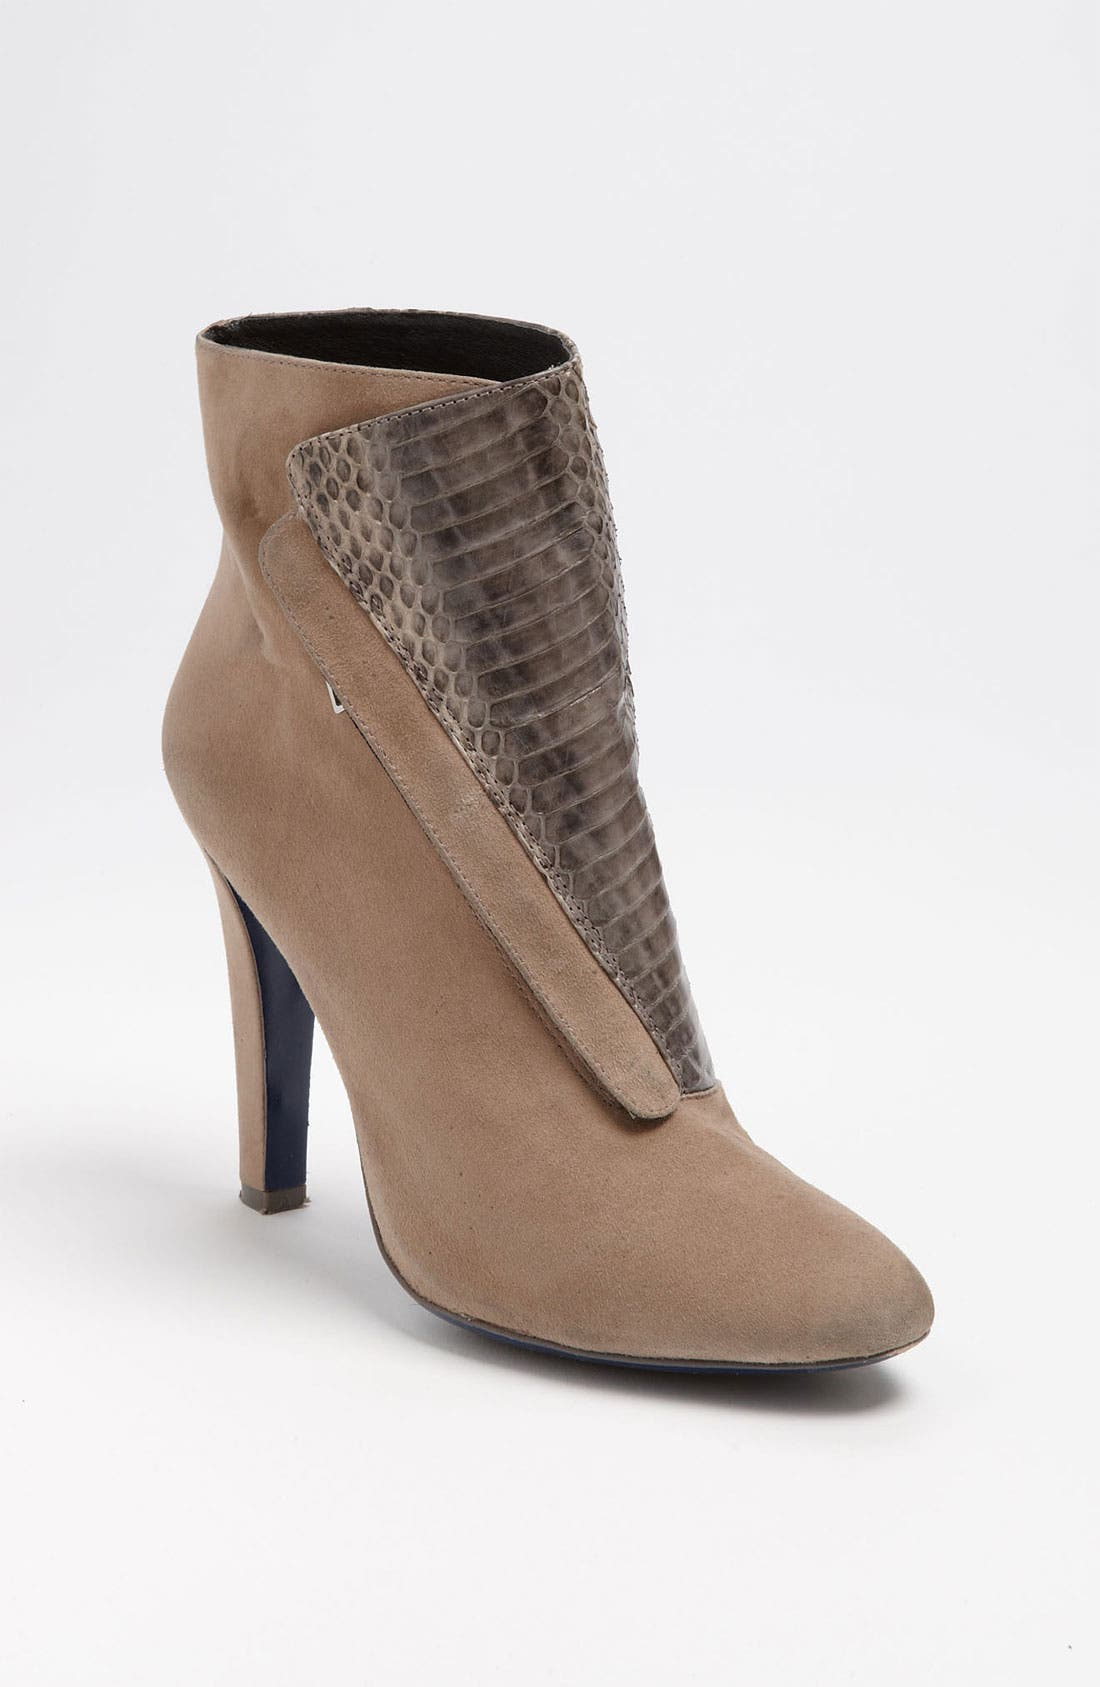 Alternate Image 1 Selected - Rebecca Minkoff 'Dante' Bootie